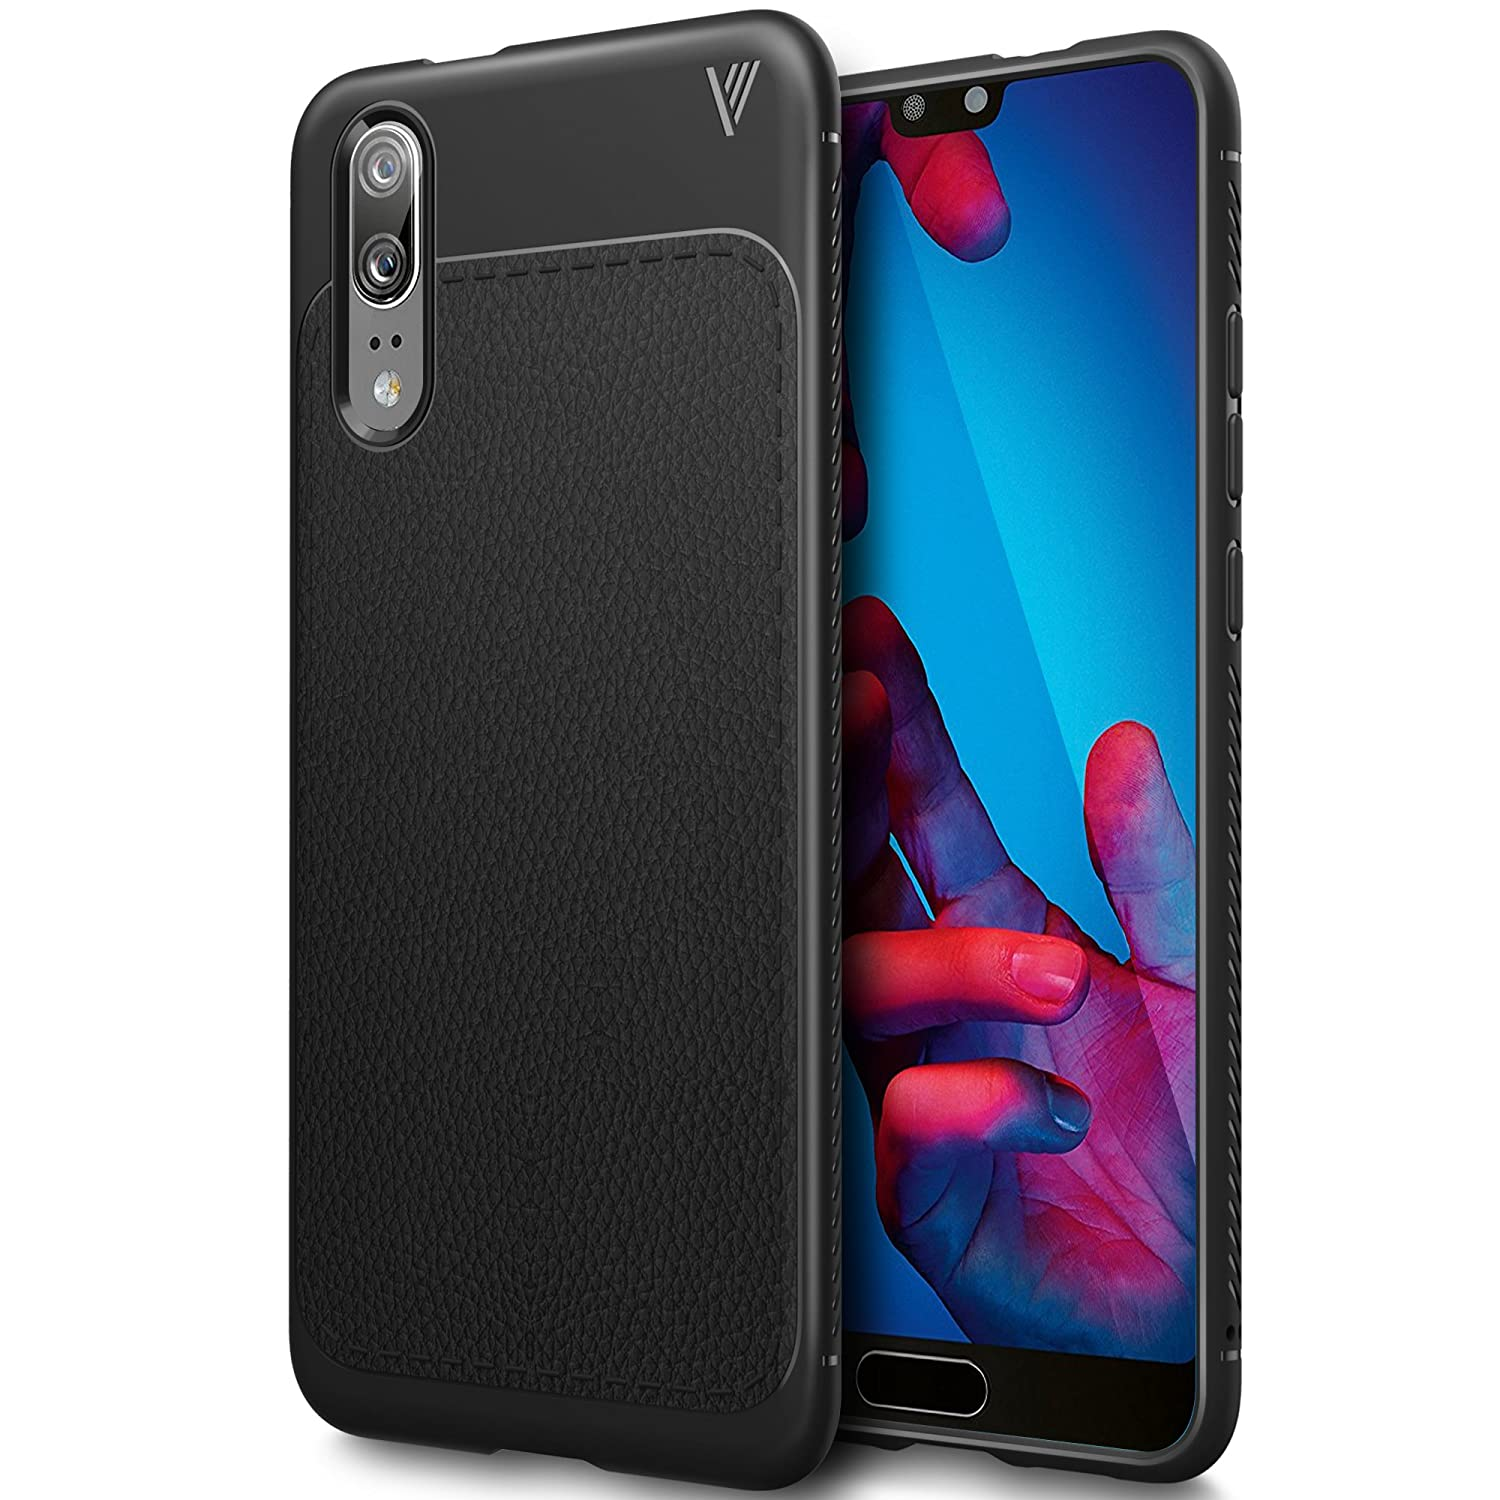 Huawei P20 Case, Huawei P20 Cover, BoseWek Huawei P20 Protective Case, Durable Protection, Exactly the compatibility for the Huawei P20 Smartphone. (Black)